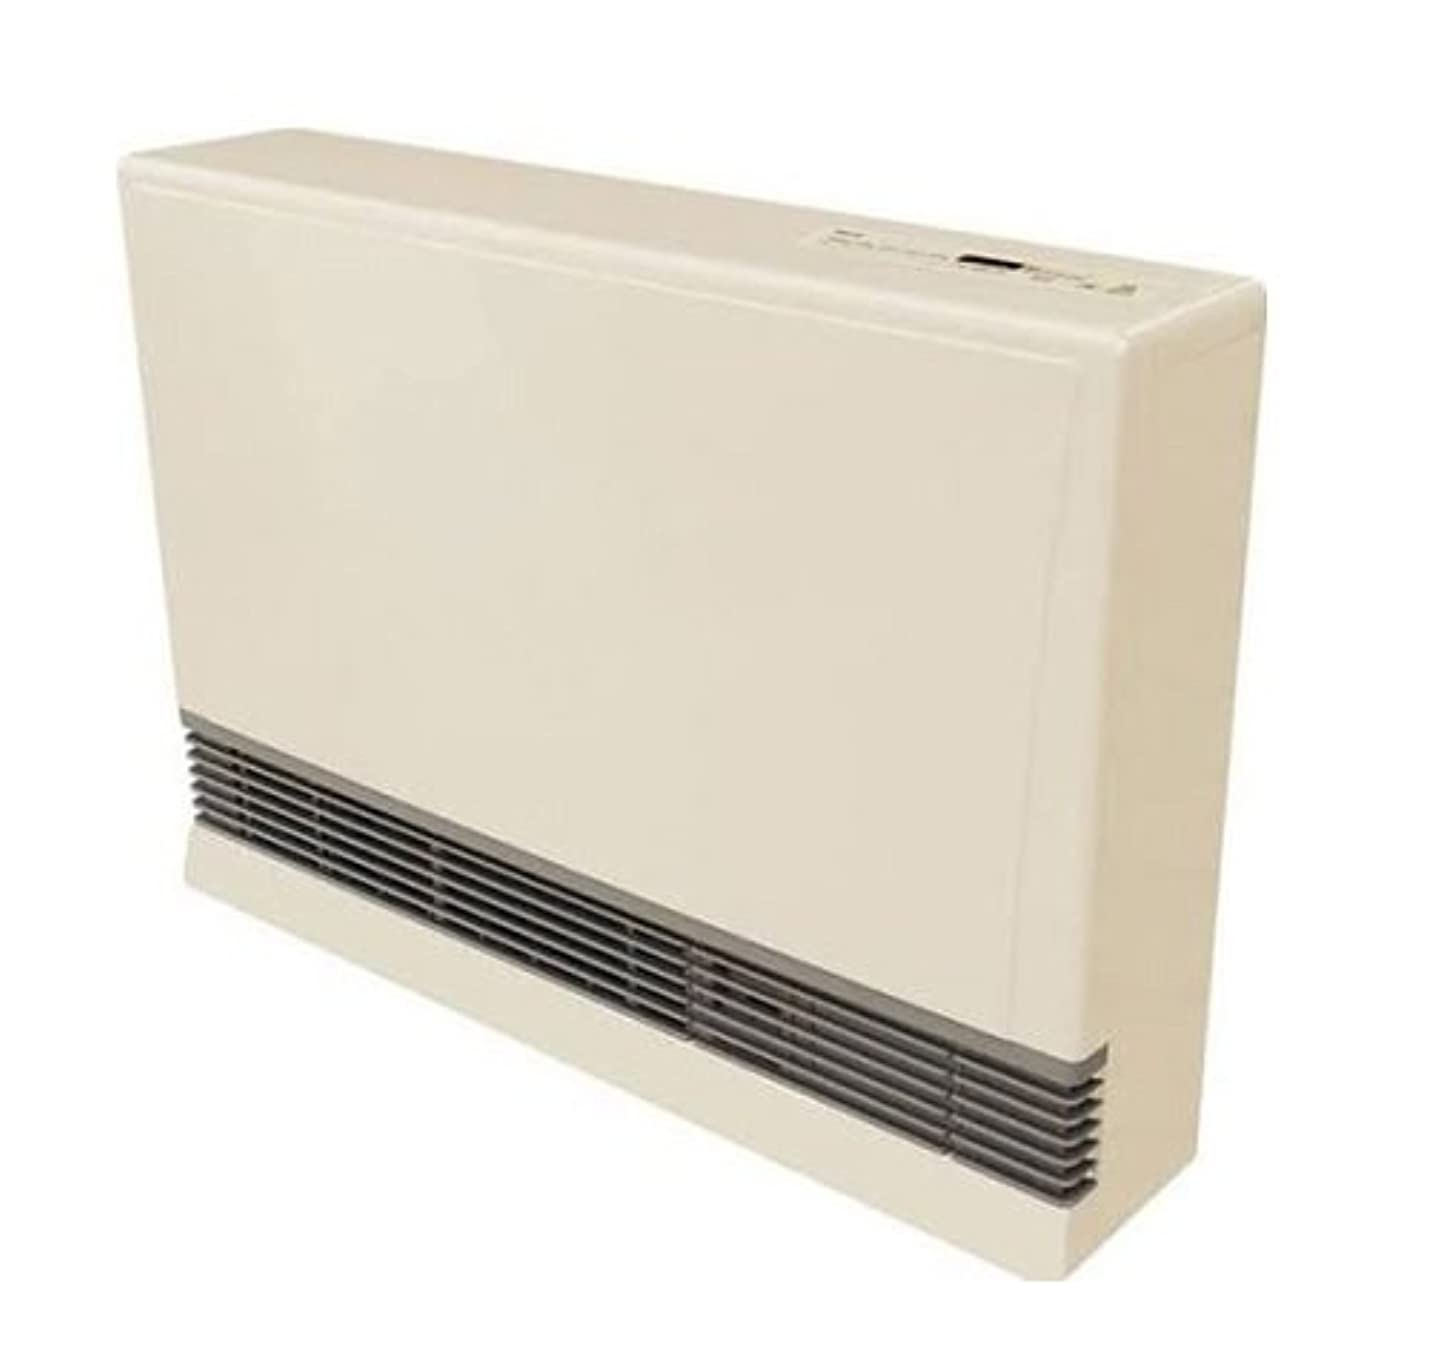 アルネチェリー革命Rinnai EX38CTLP Direct Vent Space Heater - Liquid Propane BEIGE, 141[並行輸入]